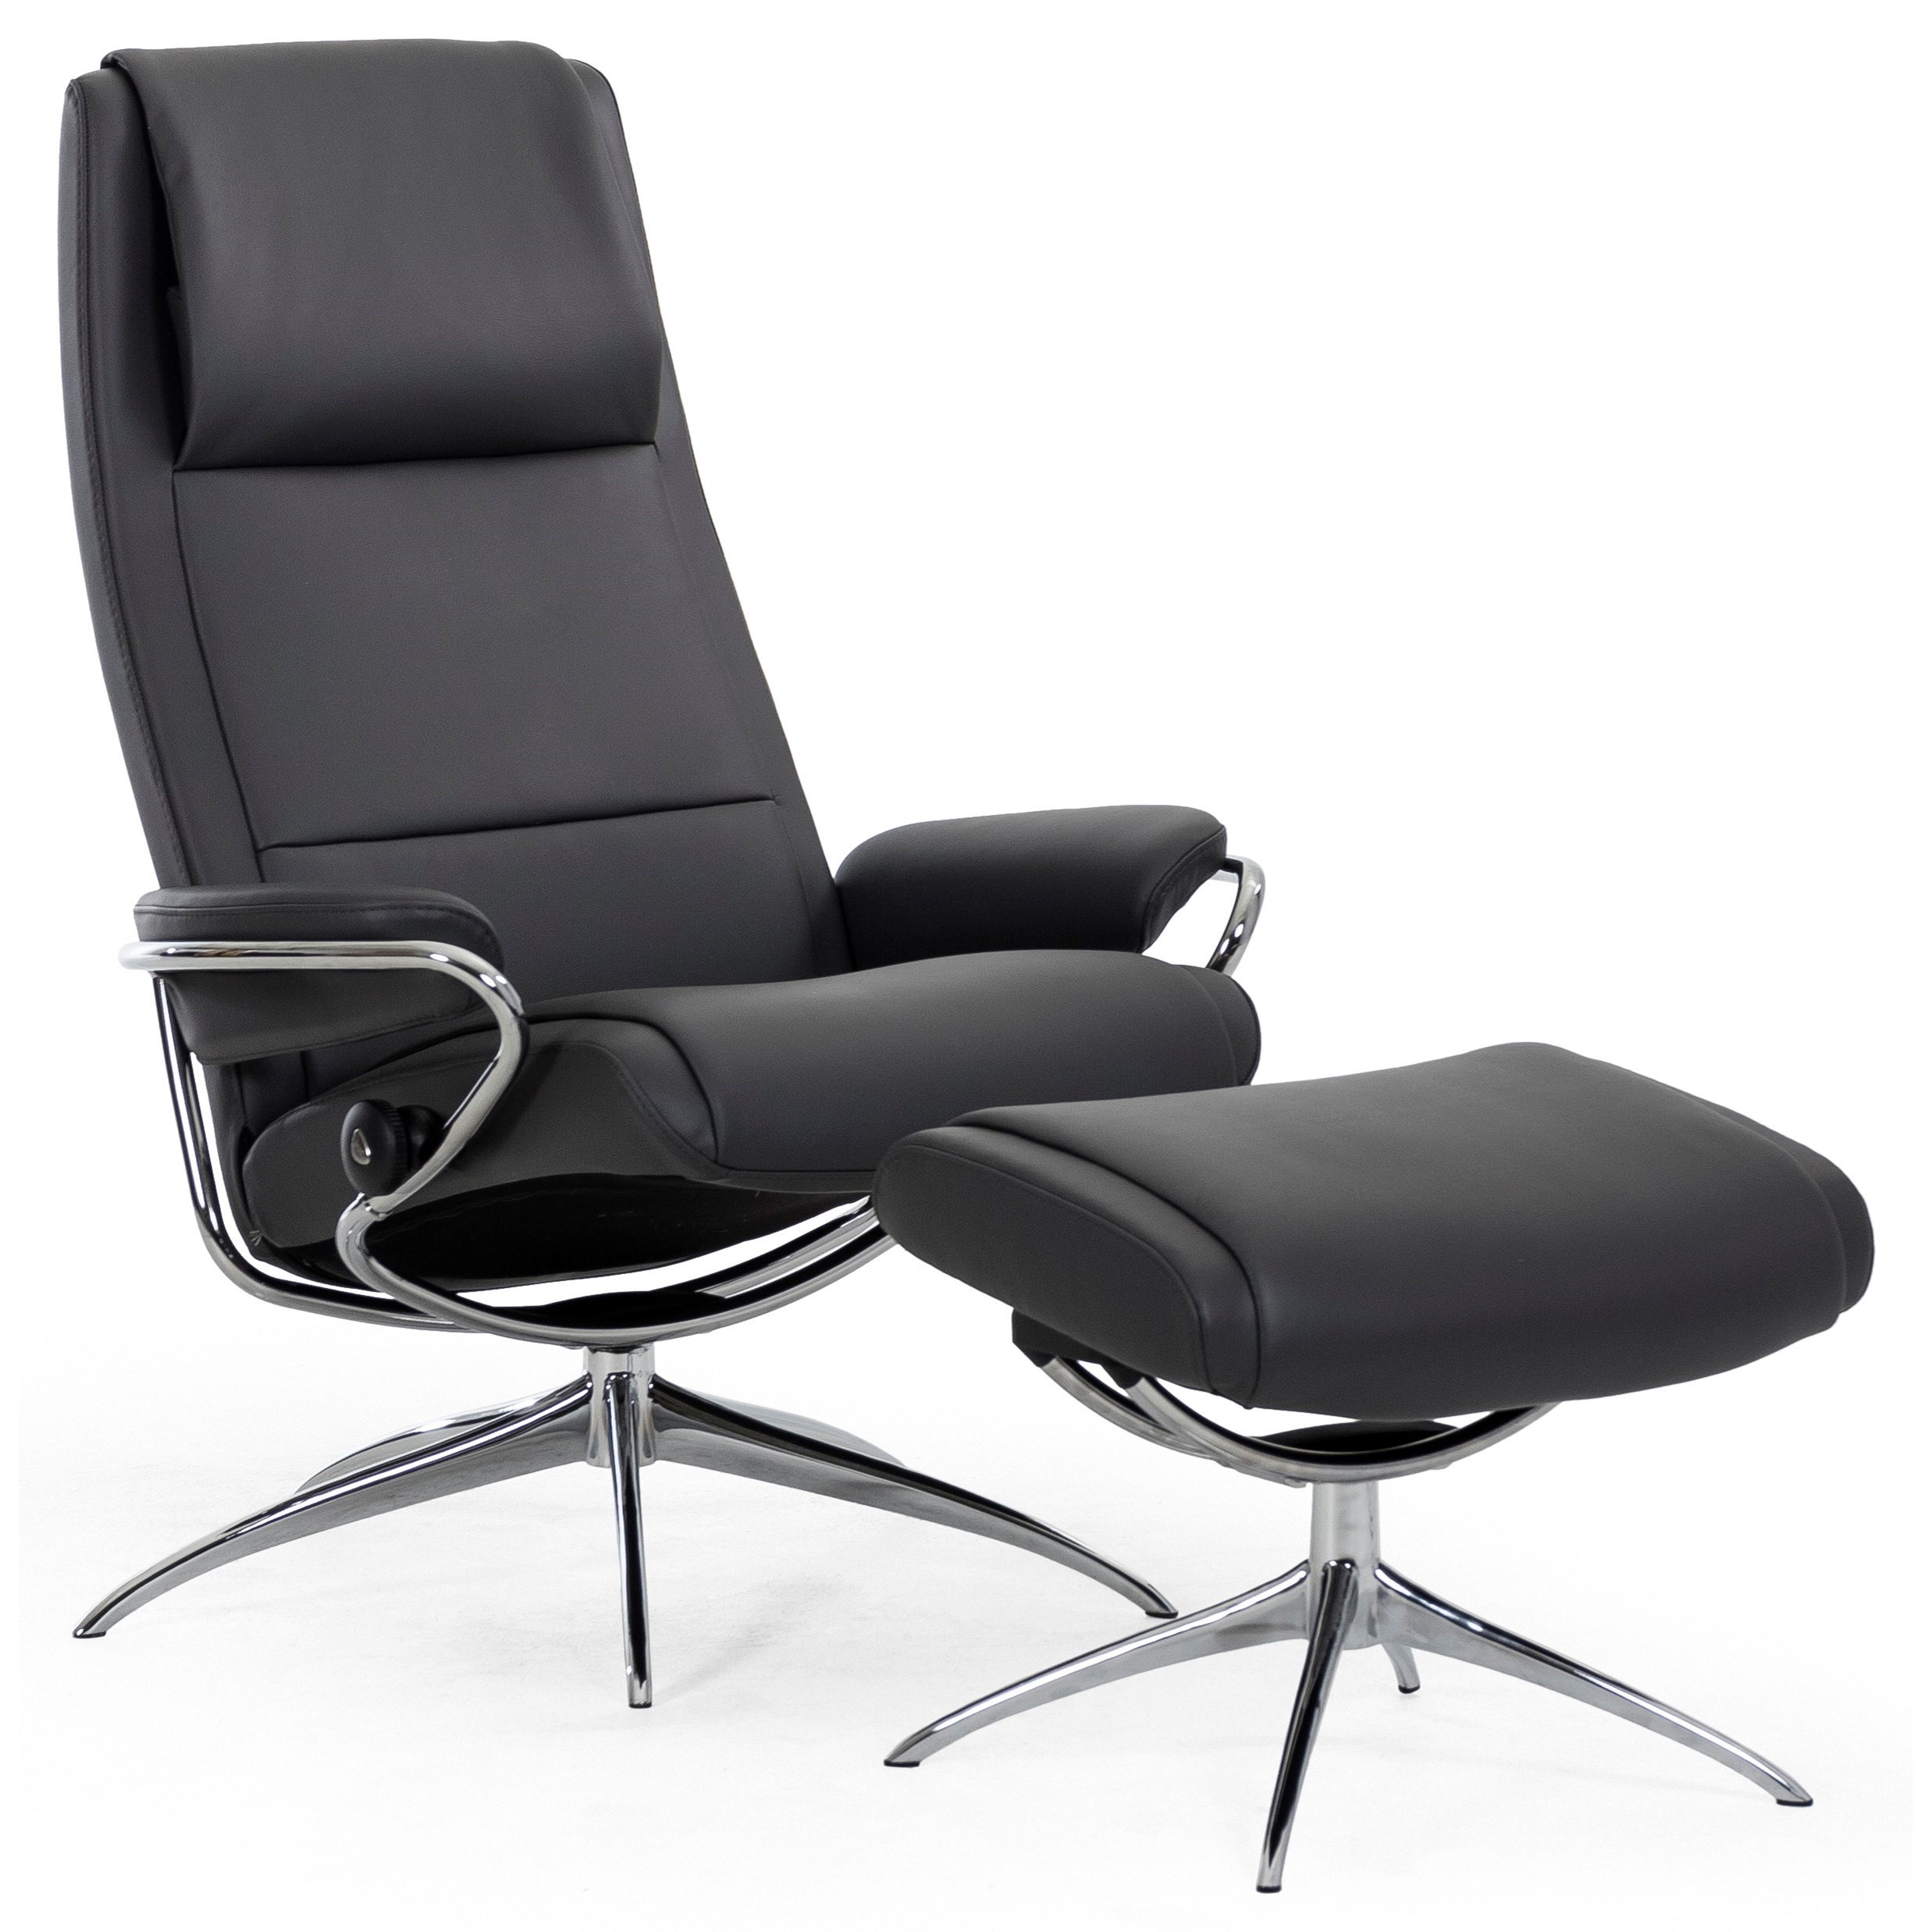 Paris High Back Recliner and Ottoman by Stressless at Virginia Furniture Market